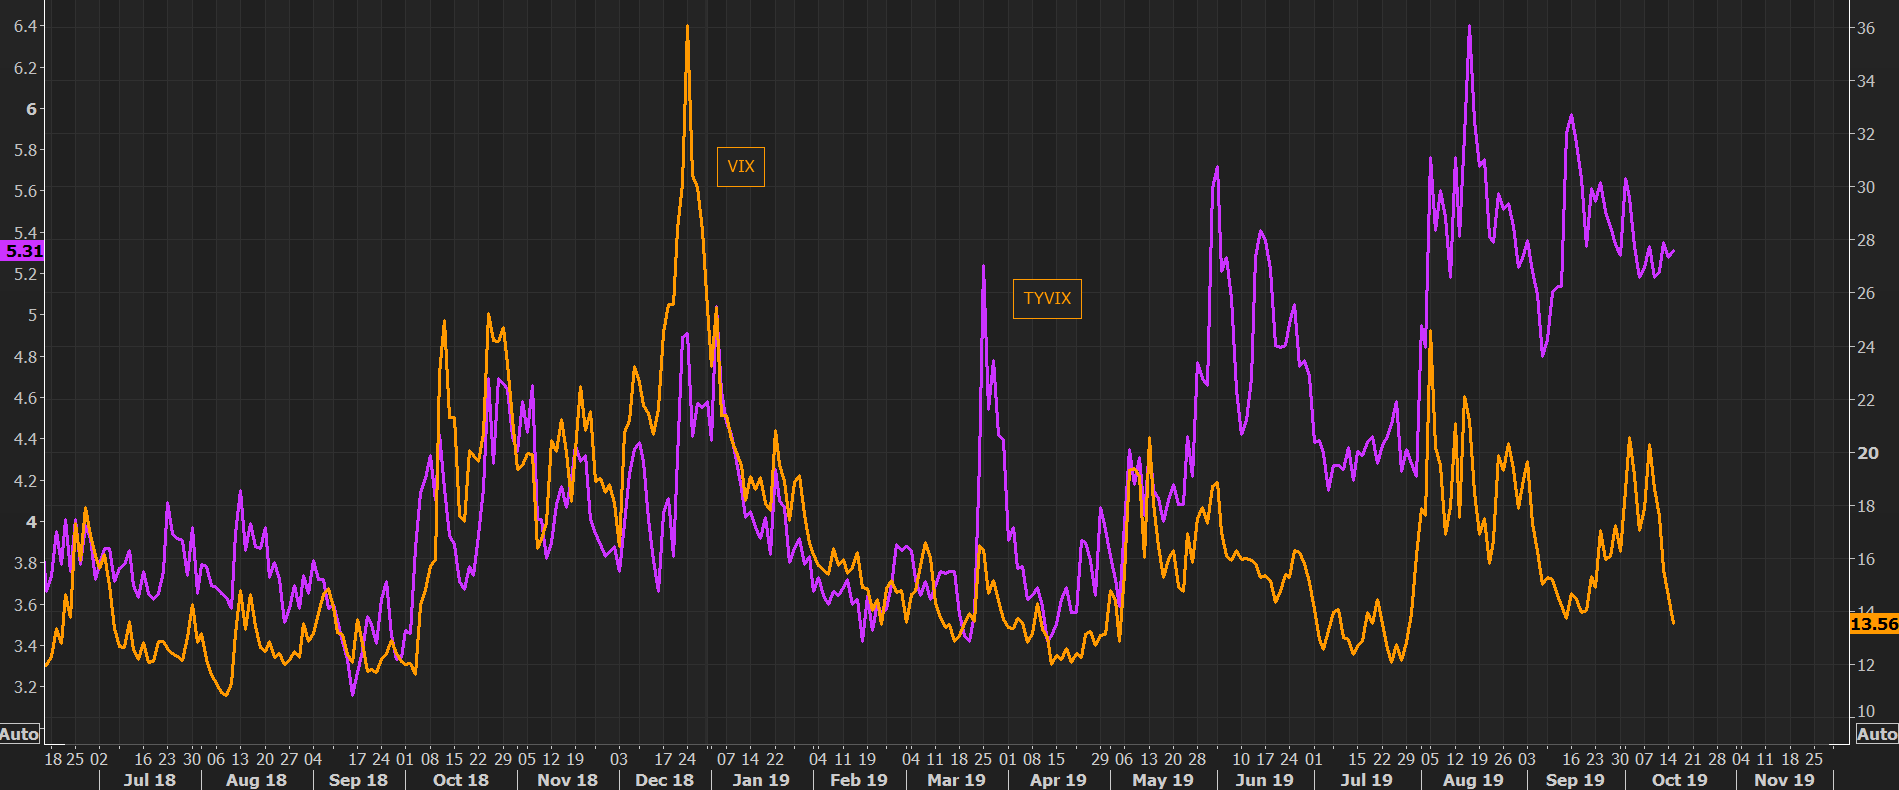 Treasury and equity volatility live in different worlds